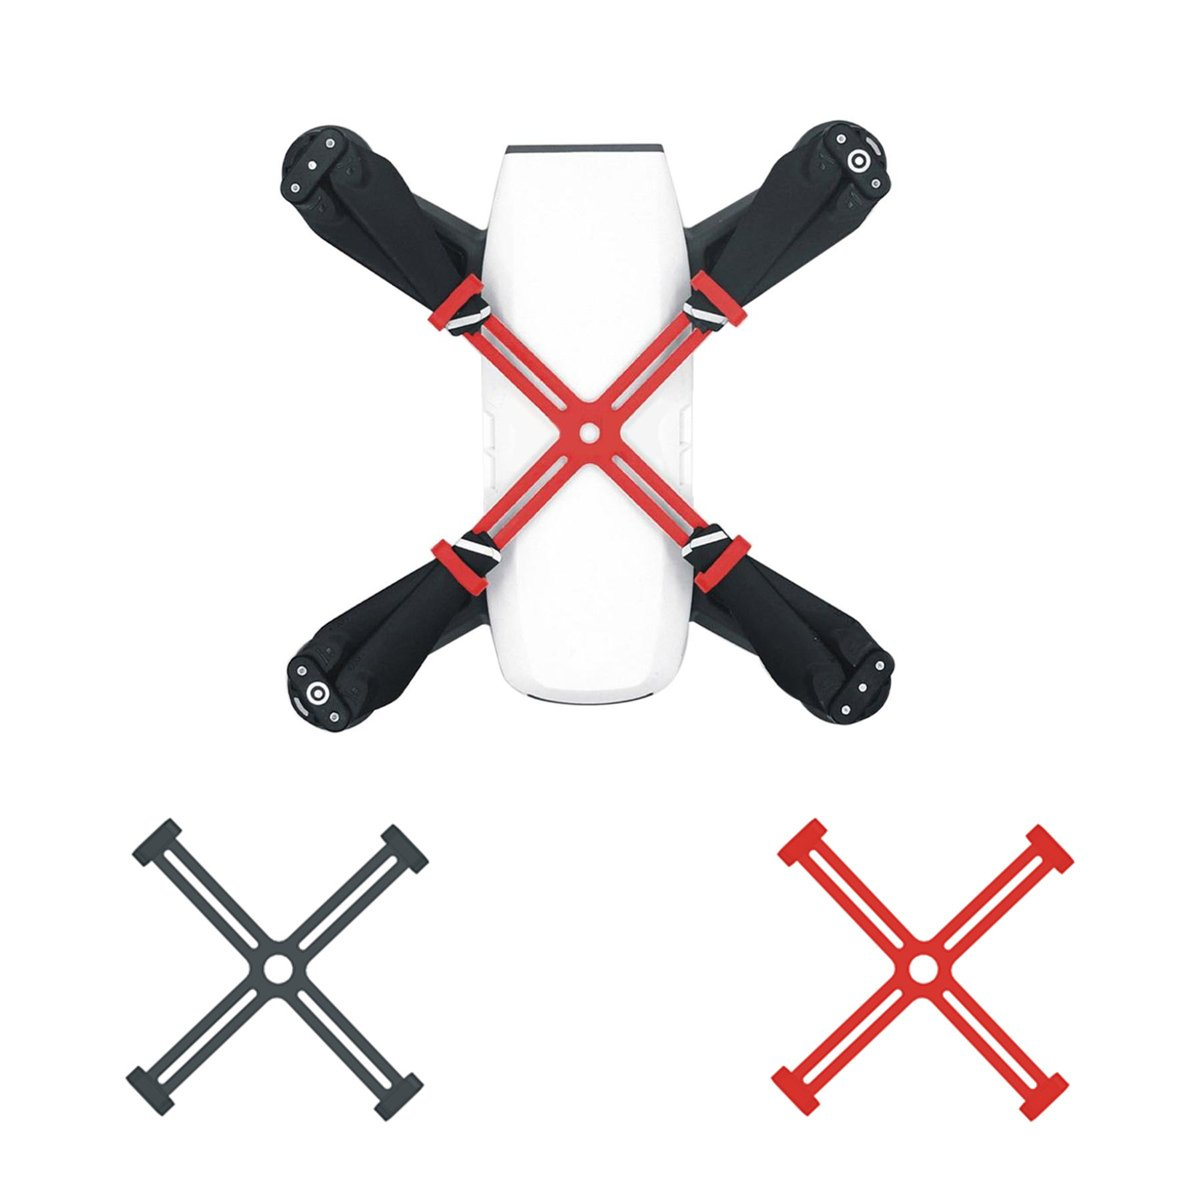 NEWQIBEAUTY DJI Spark Accessories Propeller Blade Fixed Holders Transport Protector Fixing Propeller Clips